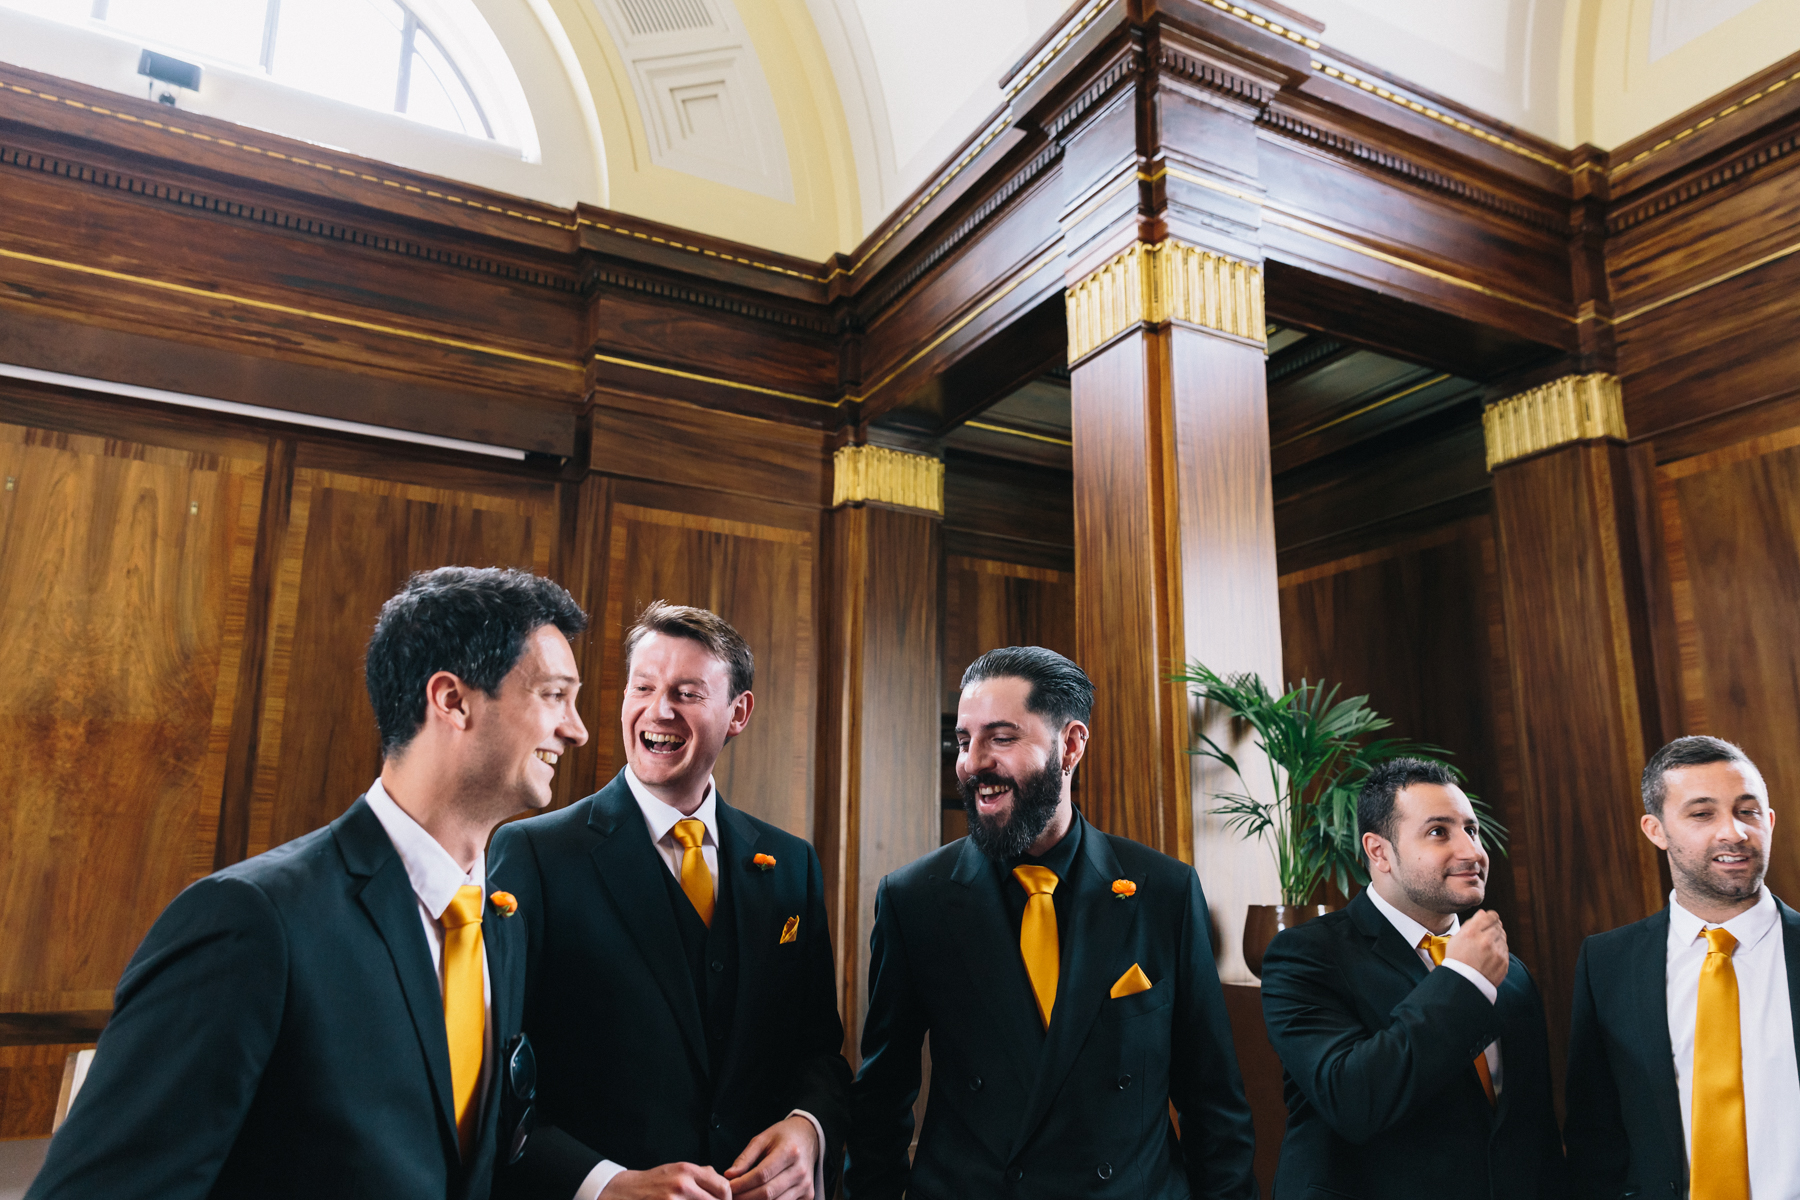 STOKE NEWINGTON TOWN HALL WEDDING-13